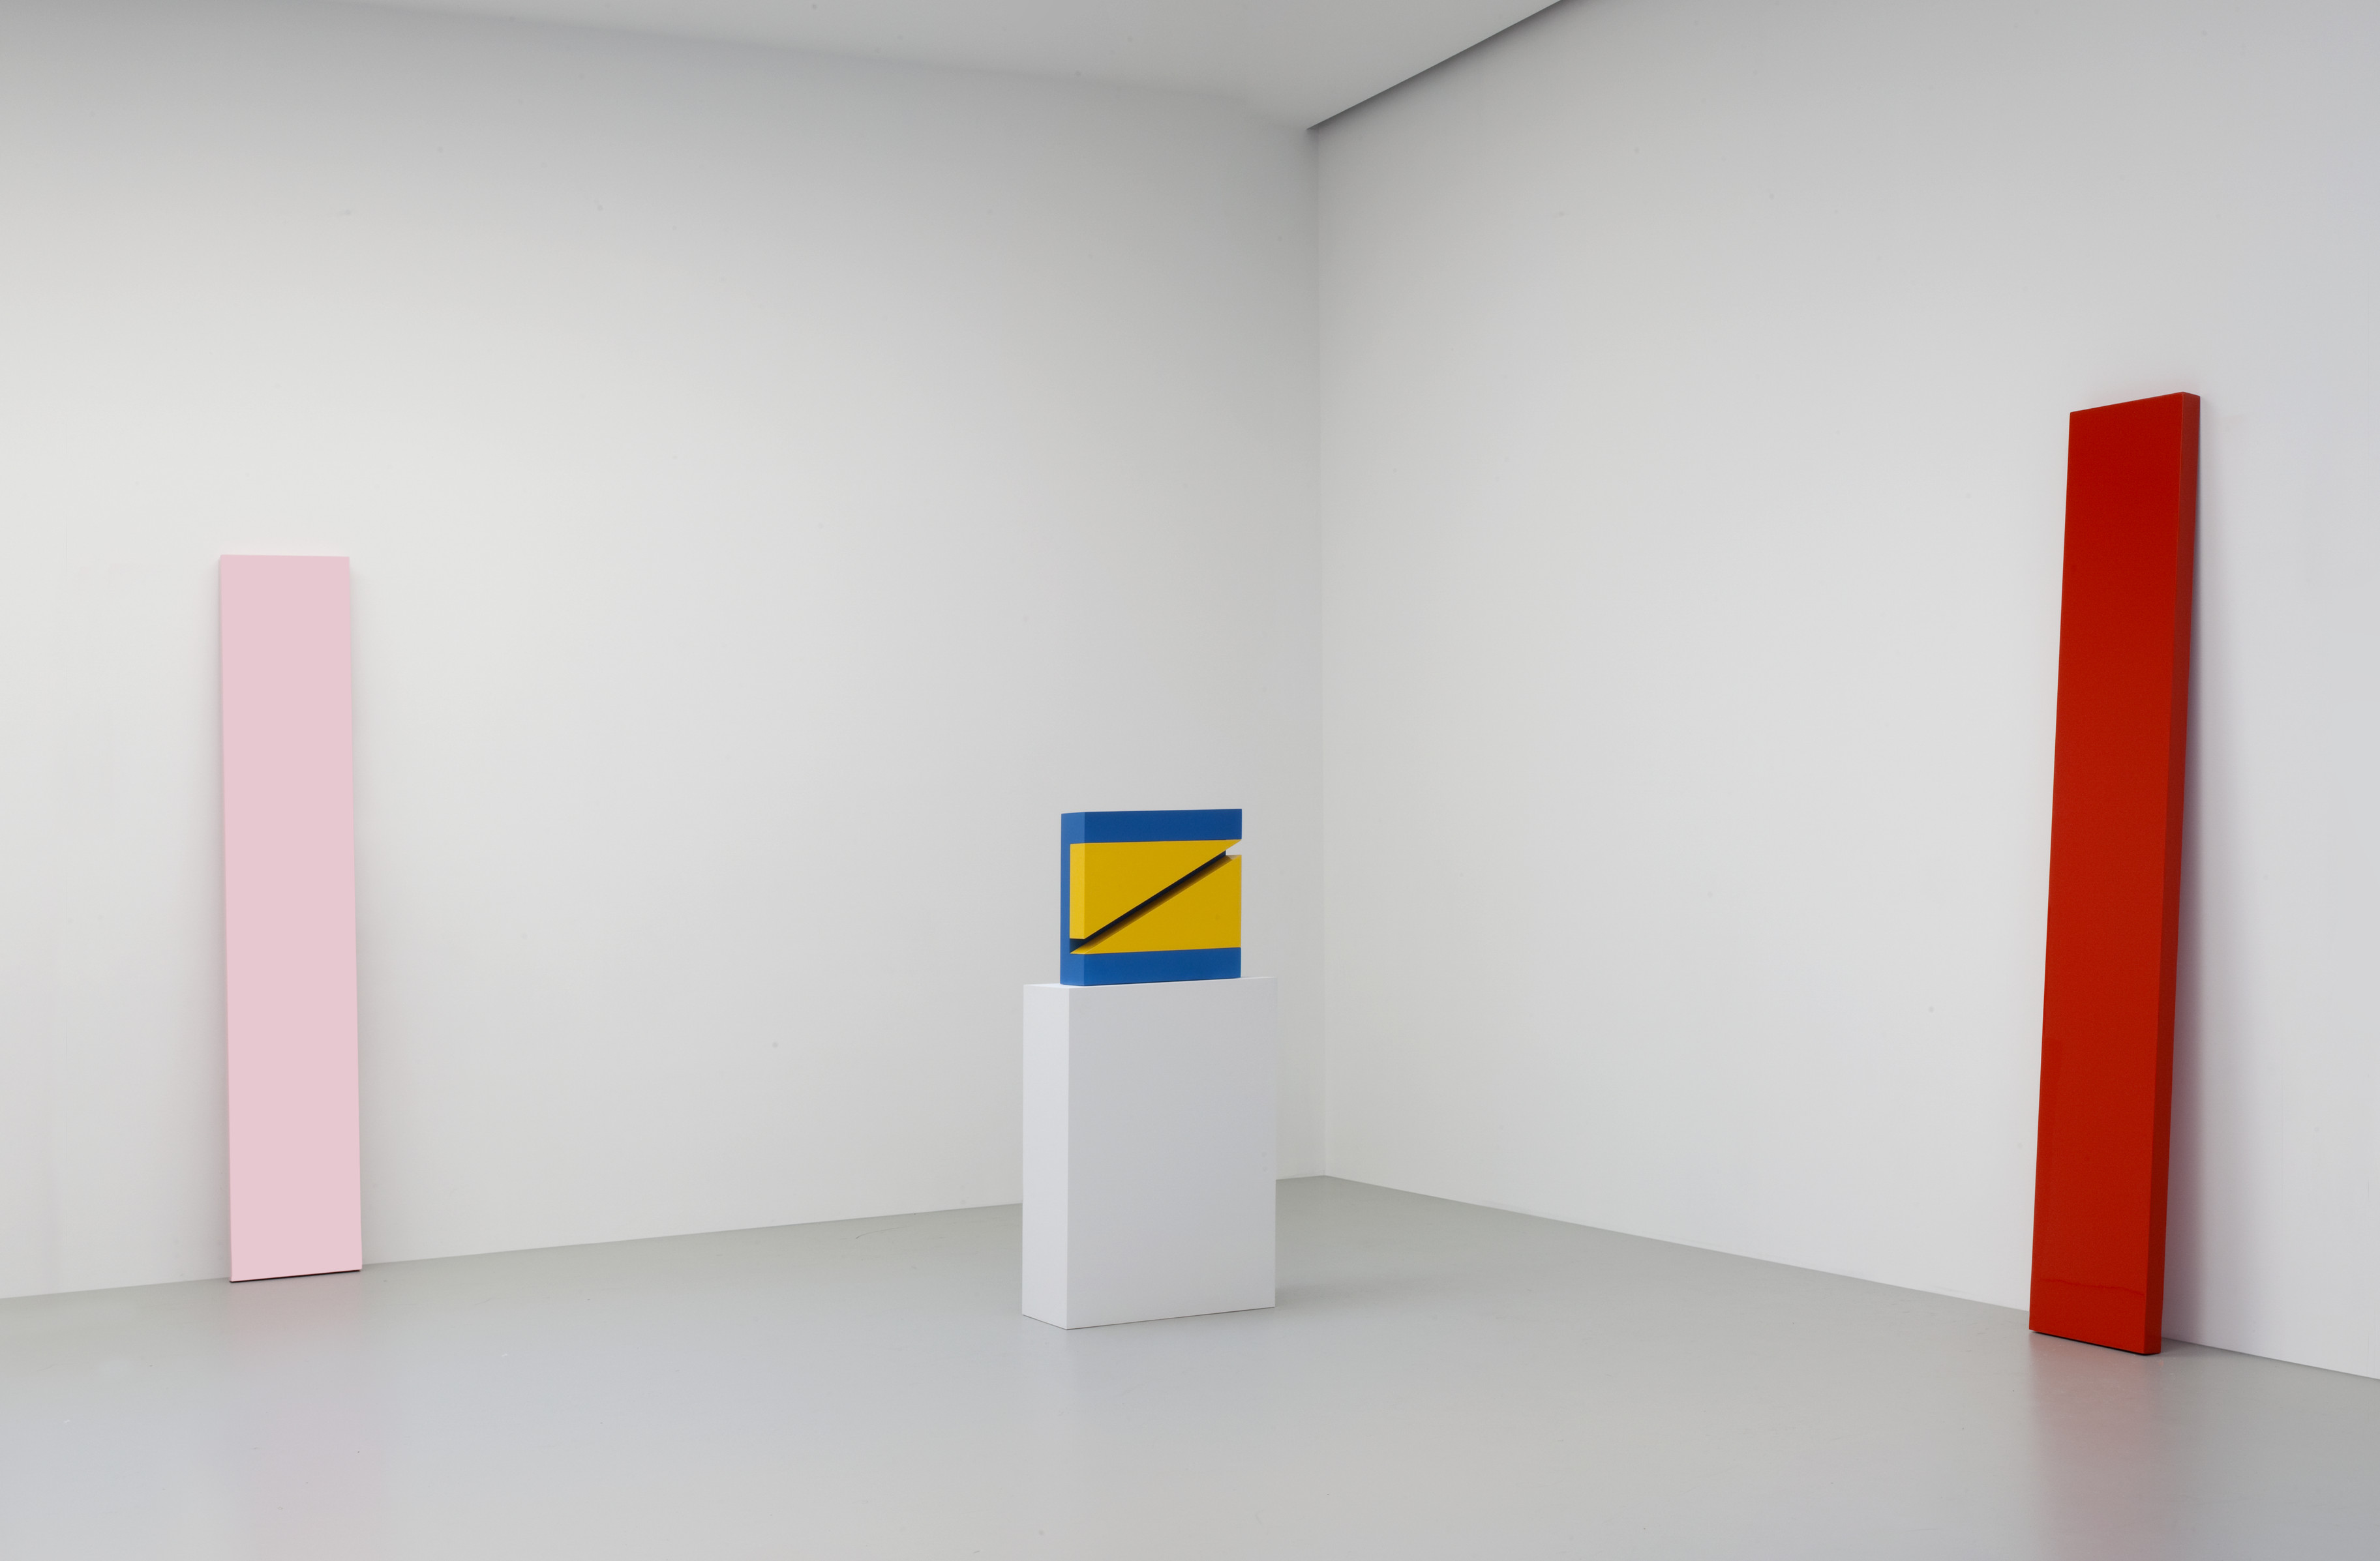 John McCracken, Installation view of the 2010 group exhibition Primary Atmospheres: Works from California 1960-1970 at David Zwirner, New York, © The Estate of John McCracken Courtesy David Zwirner, New York/London